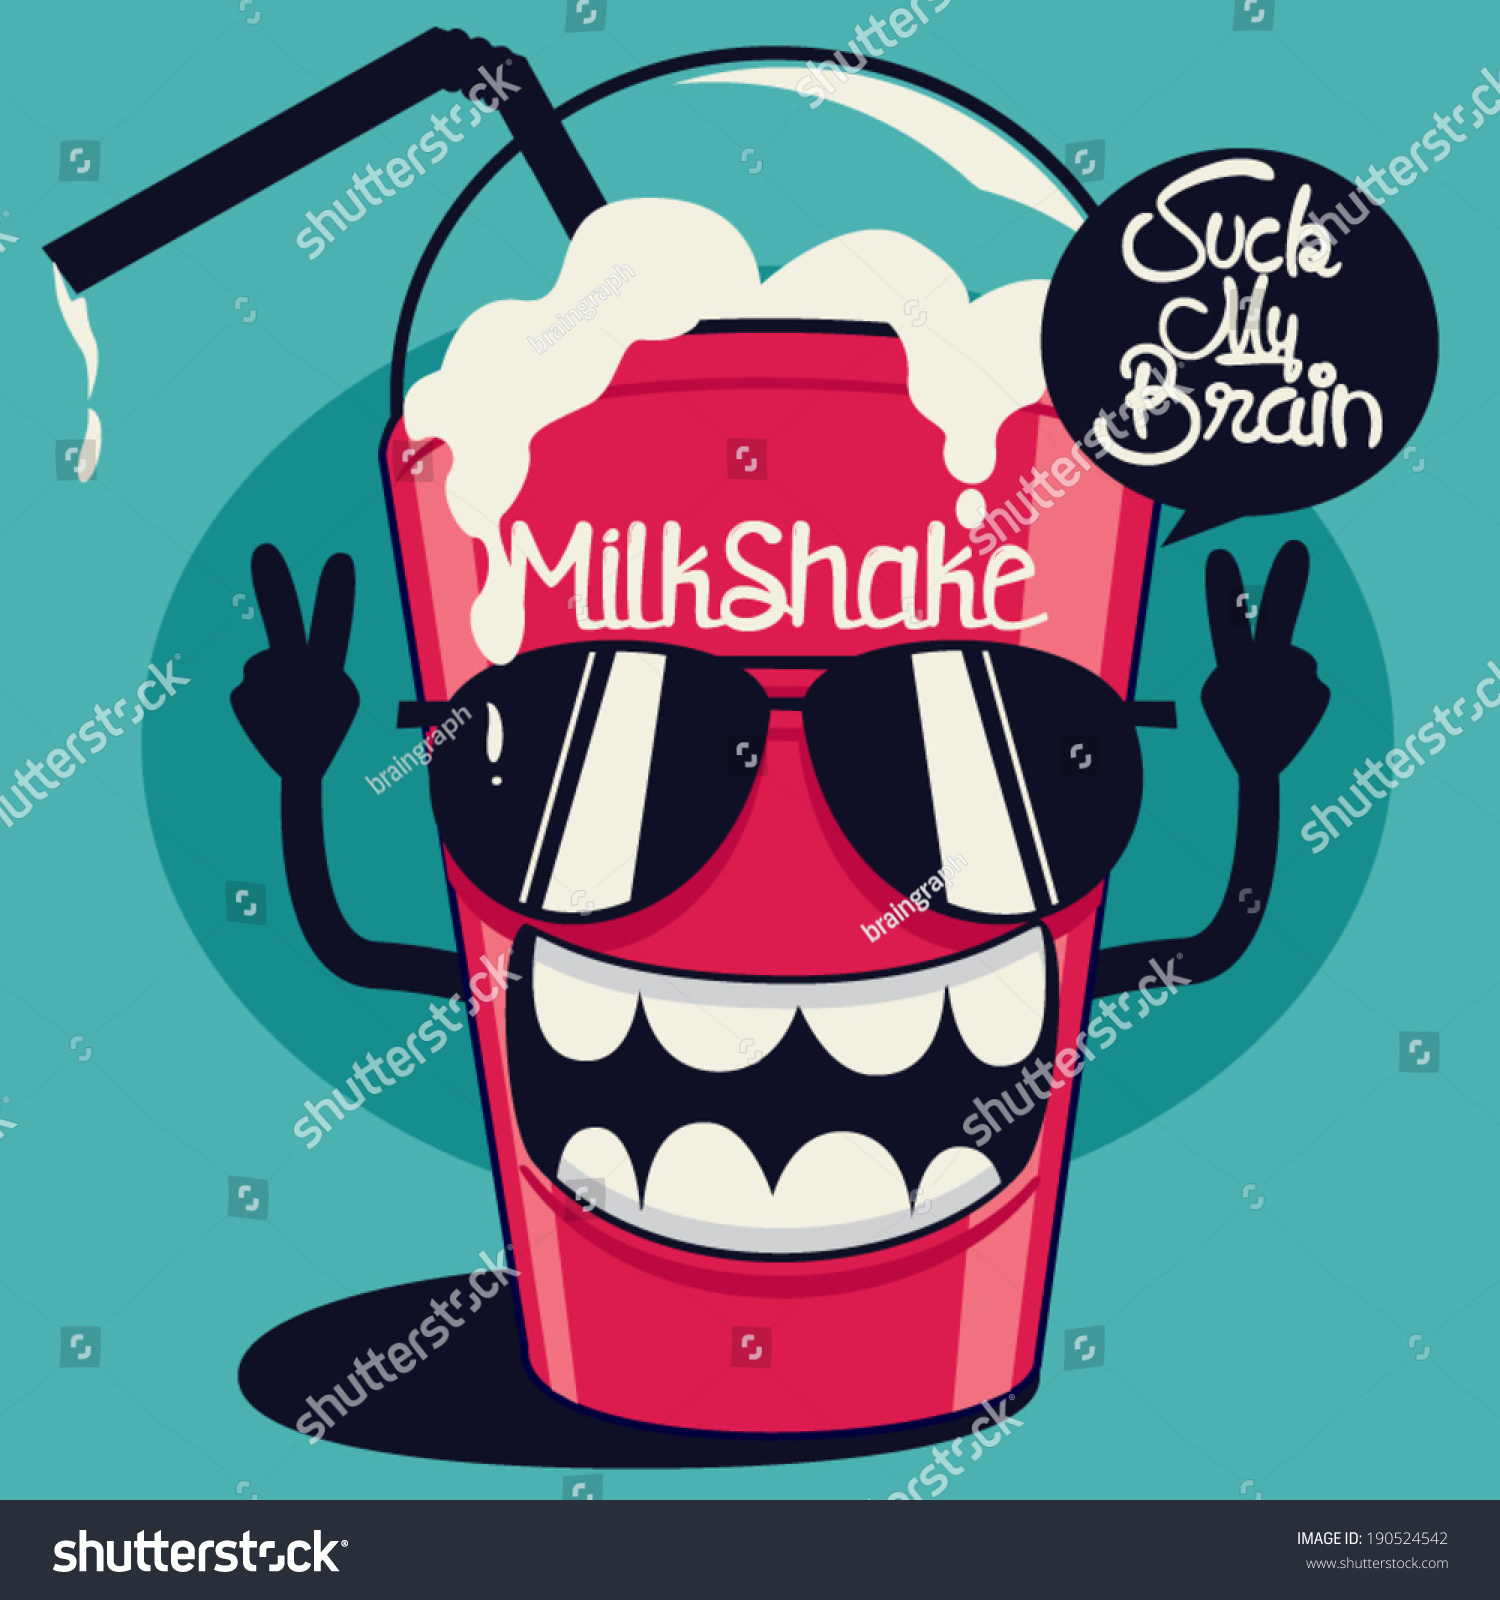 cool milkshake stock vector 190524542 shutterstock. Black Bedroom Furniture Sets. Home Design Ideas